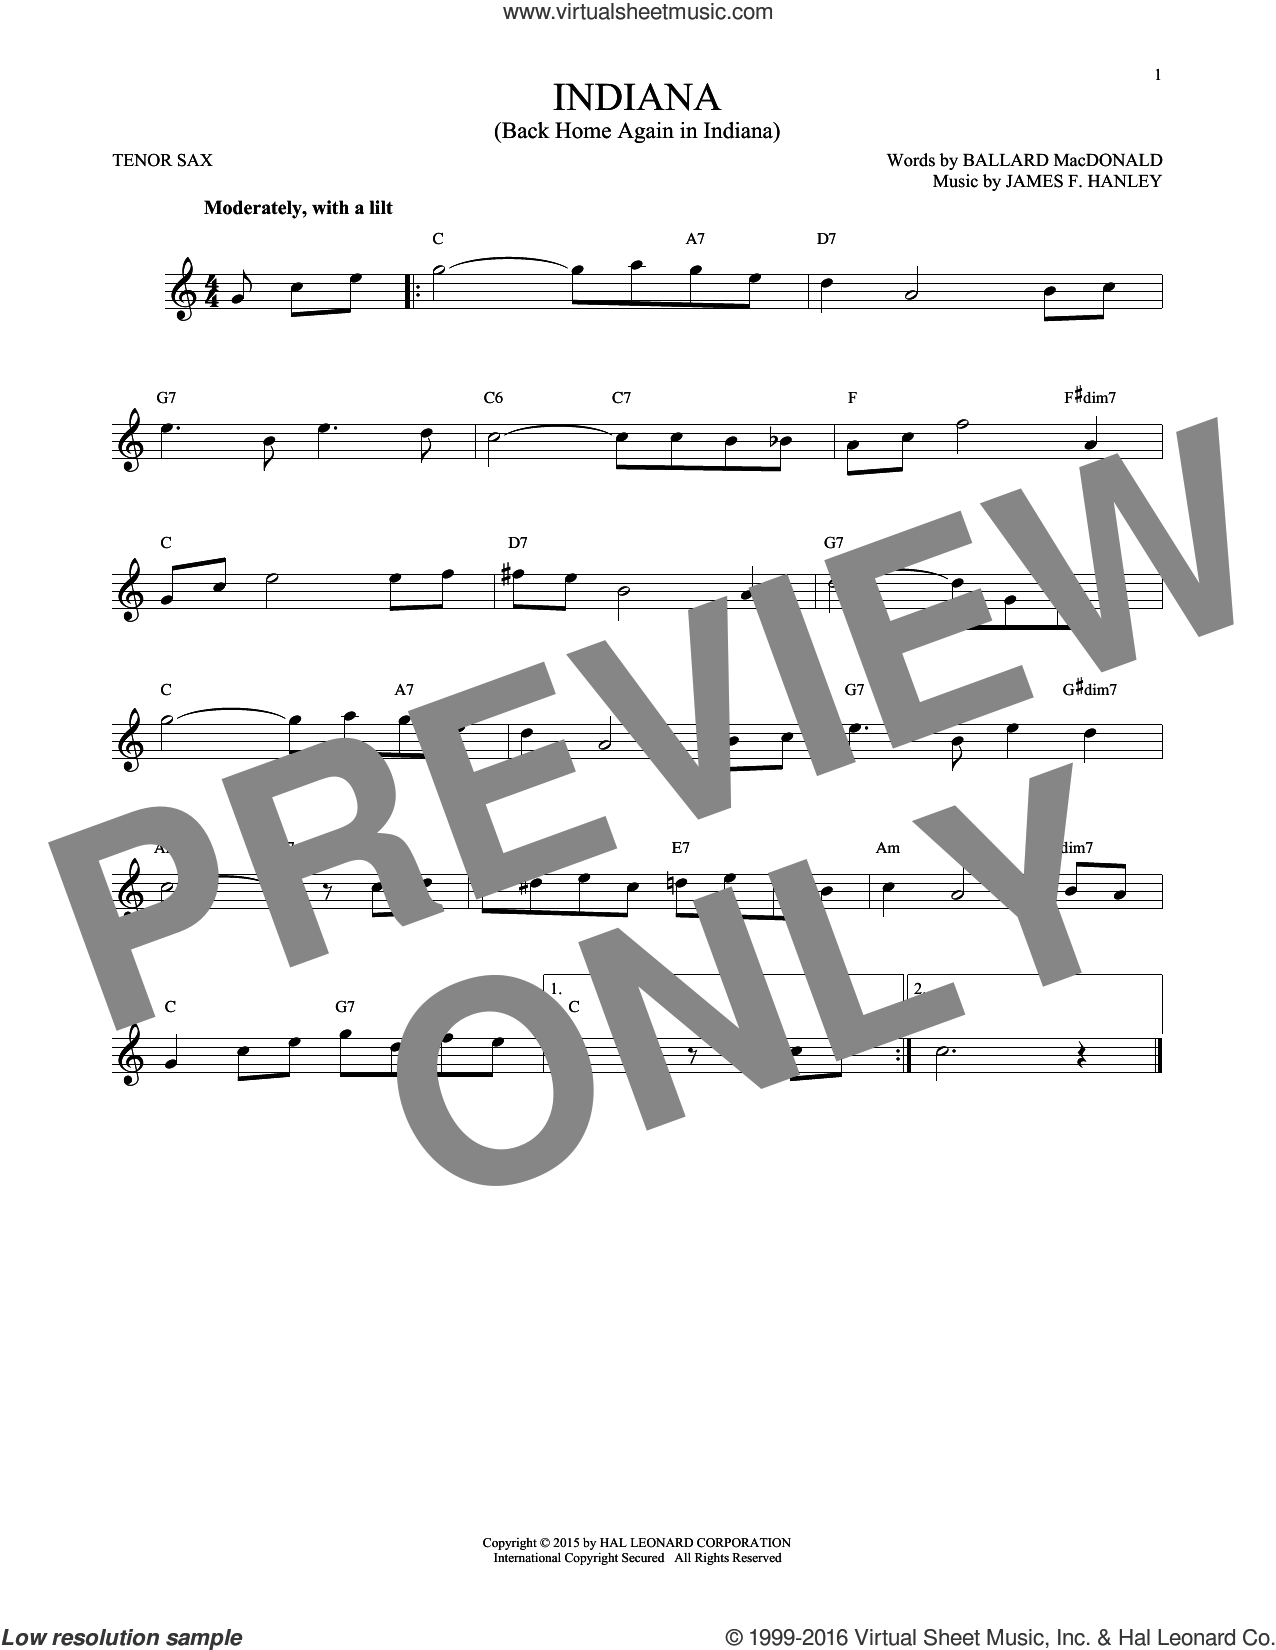 Indiana (Back Home Again In Indiana) sheet music for tenor saxophone solo by Ballard MacDonald and James Hanley, intermediate skill level